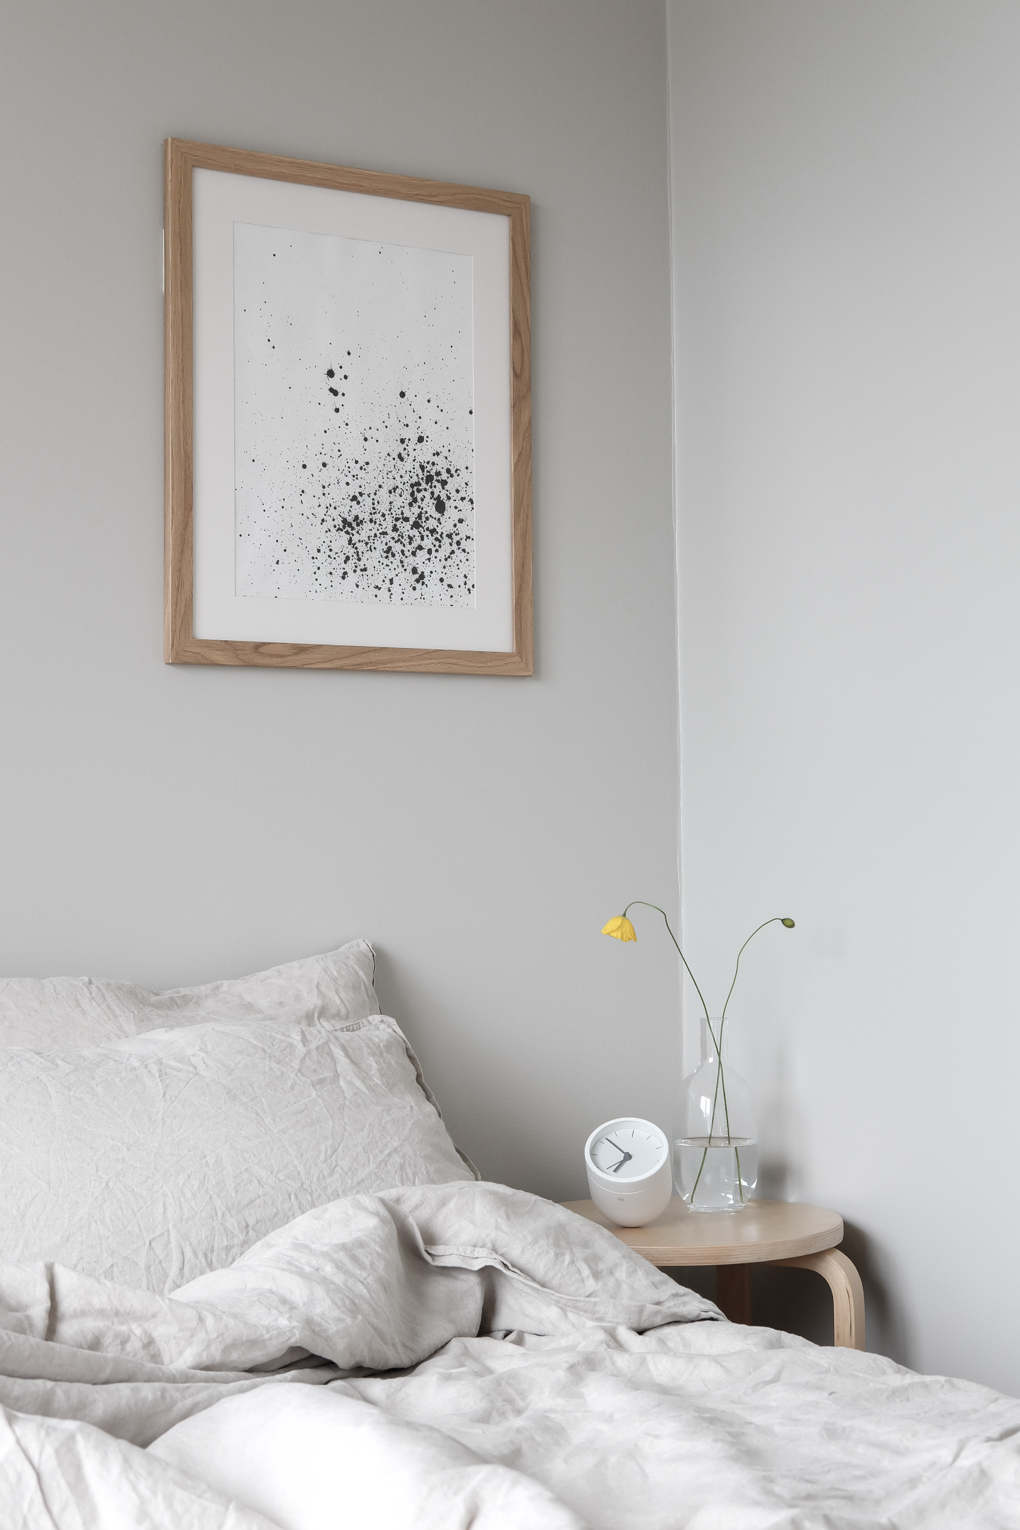 Modern-Scandinavian-style-bedroom-beige-linen-sheets-light-grey-walls-wall-art-and-yellow-poppies.-Styling-and-photo-by-Anu-Reinson.jpg